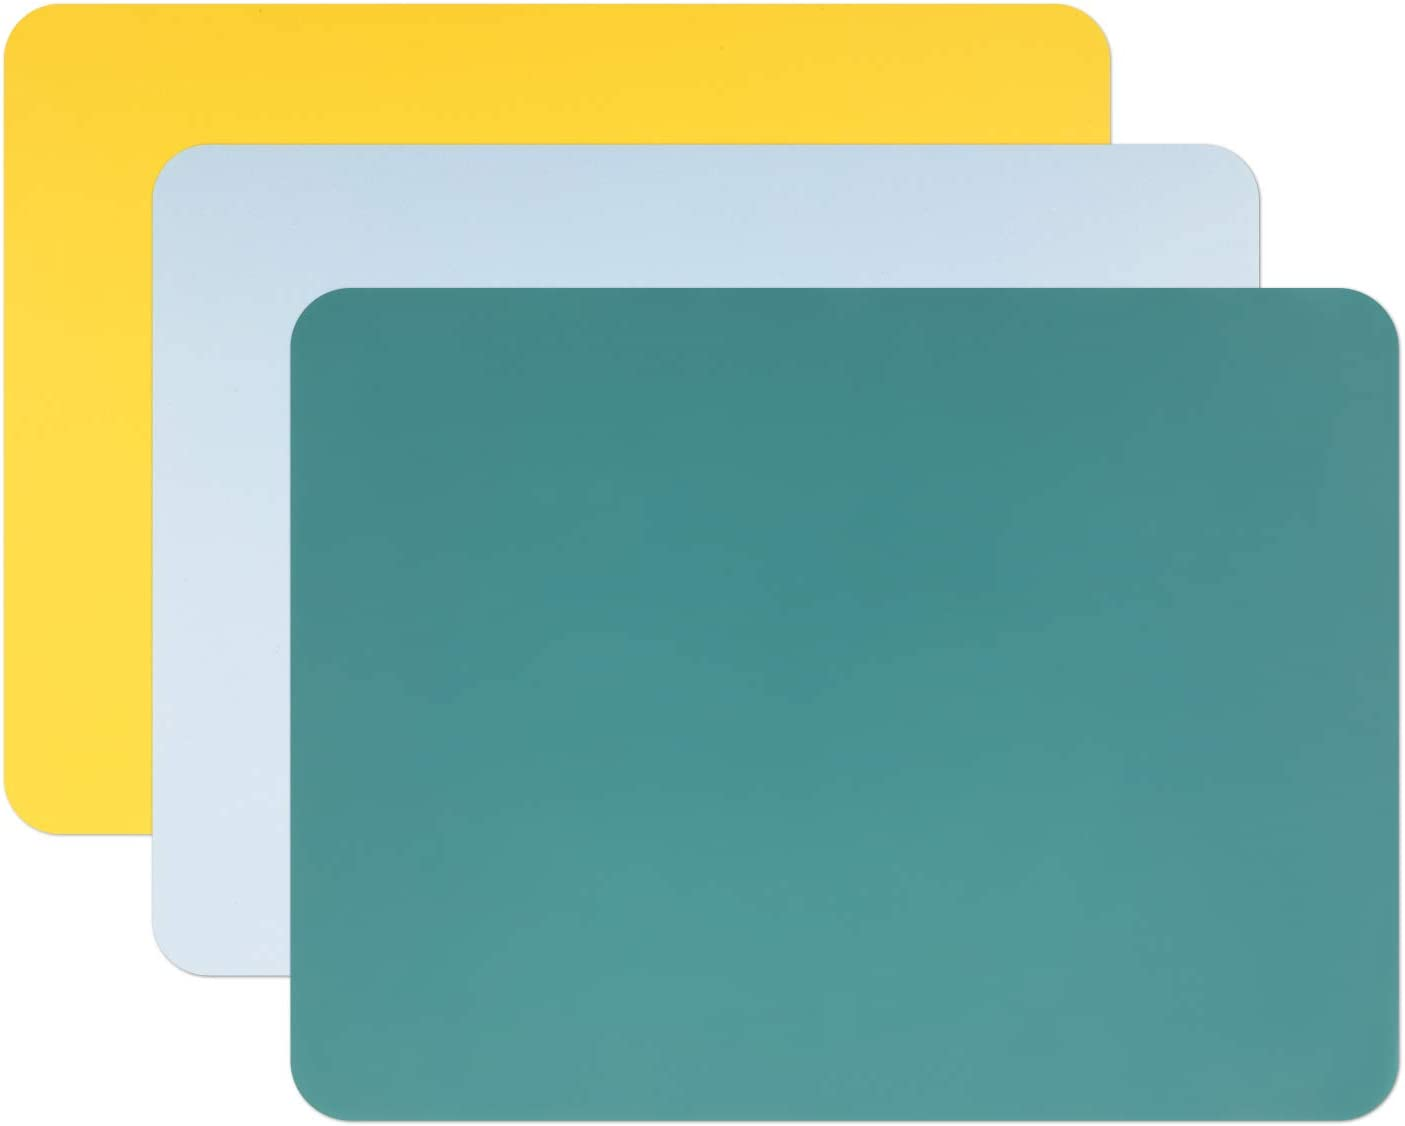 Gartful 3 PCS Silicone Sheet for Crafts, Resin Jewelry Casting Molds Mat, Food Grade Silicone Placemat Pad, Multipurpose Mat, Nonstick Nonskid Heat Resistant, Yellow & Green & Blue (15.7 x 11.8 inch)